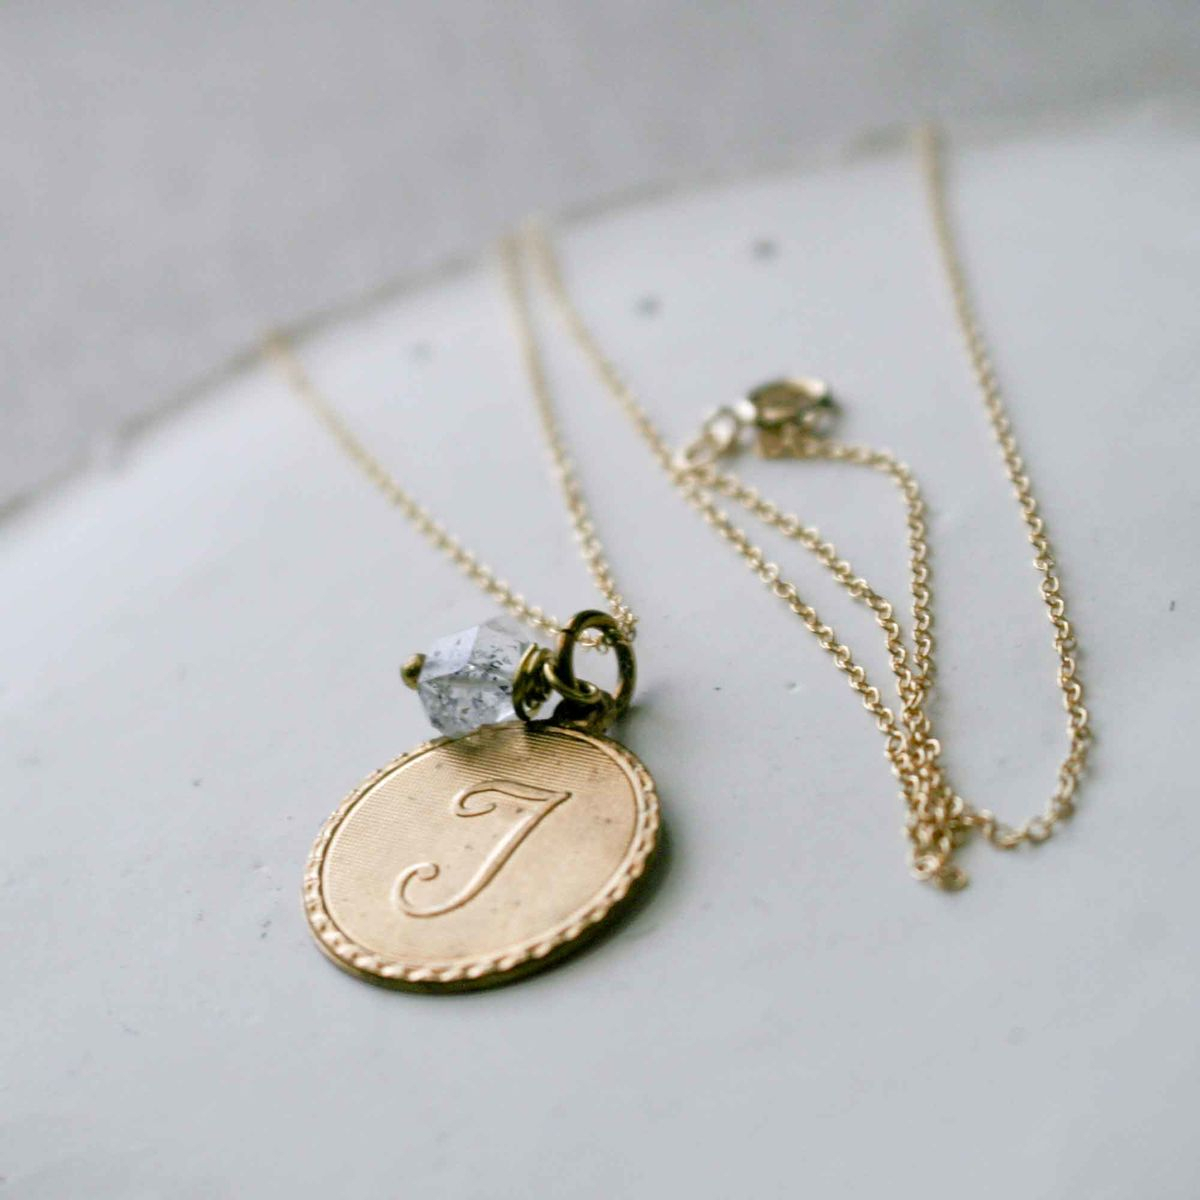 Uppercase Cursive Initial Monogram Letter Round Disc Charm Necklace Pertaining To Most Popular Letter U Alphabet Locket Element Necklaces (View 11 of 25)